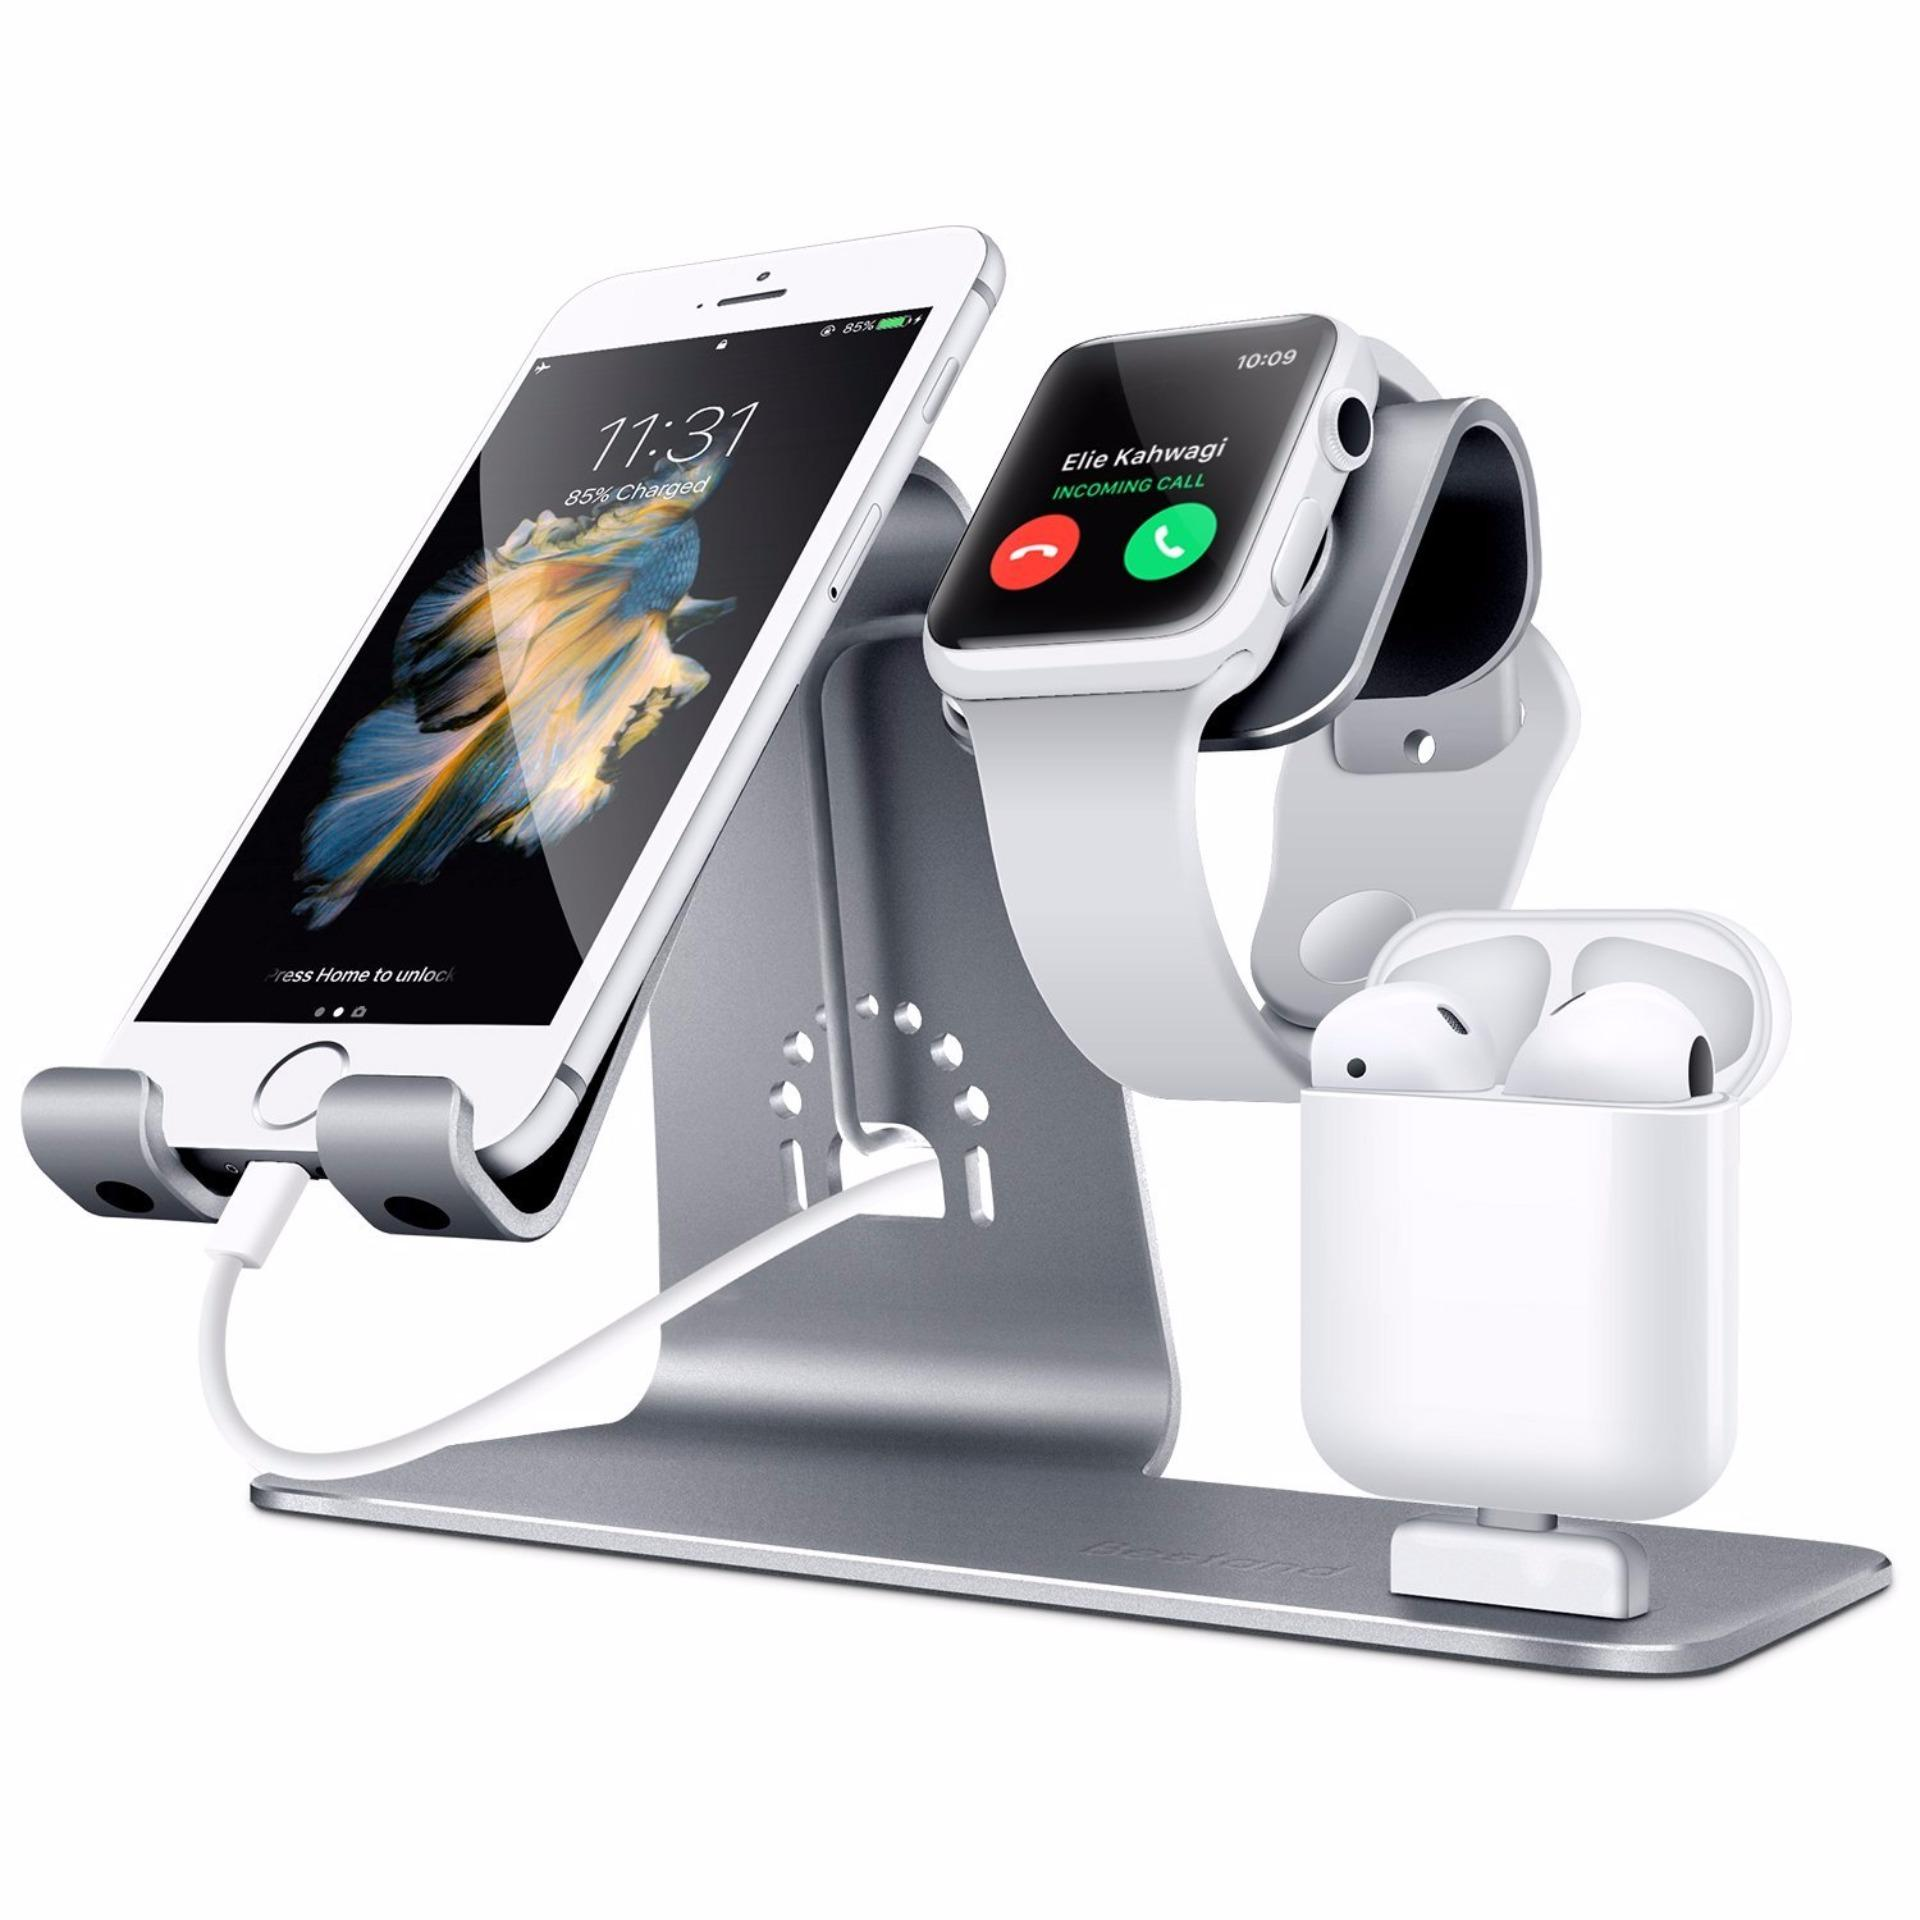 Bestand 3 in 1 Apple iWatch Stand, Airpods Charger Dock, Phone Desktop  Tablet Holder for Airpods, Apple Watch/ iPhone 7 Plus/ iPad,Space